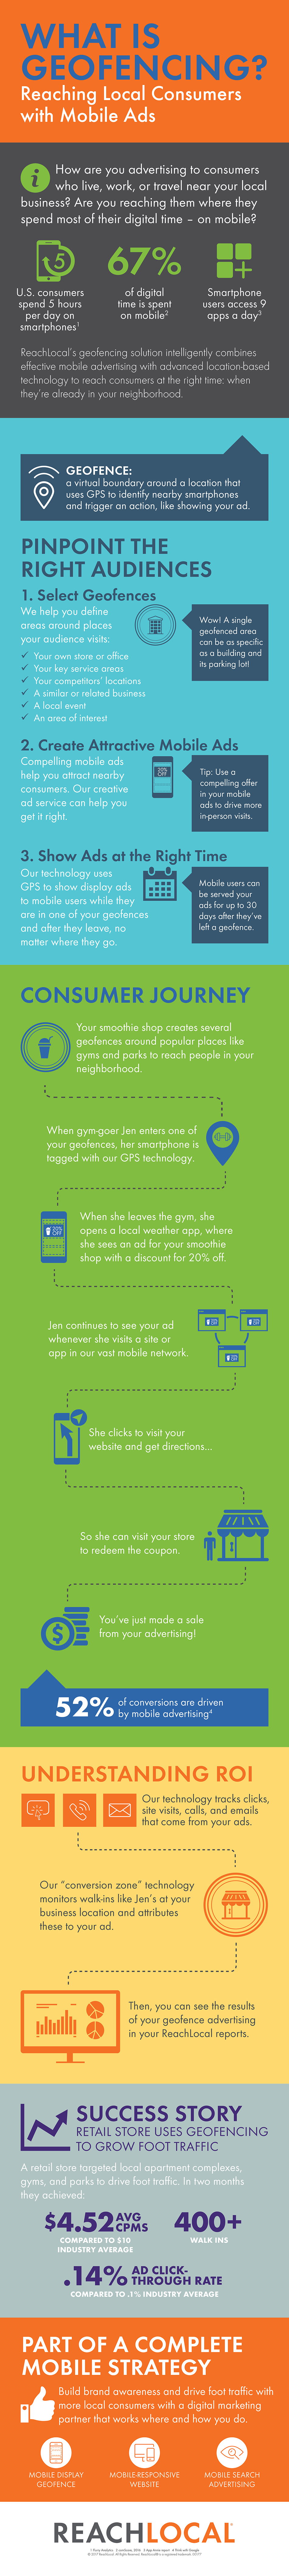 ReachLocal Infographic: What is Geofencing?